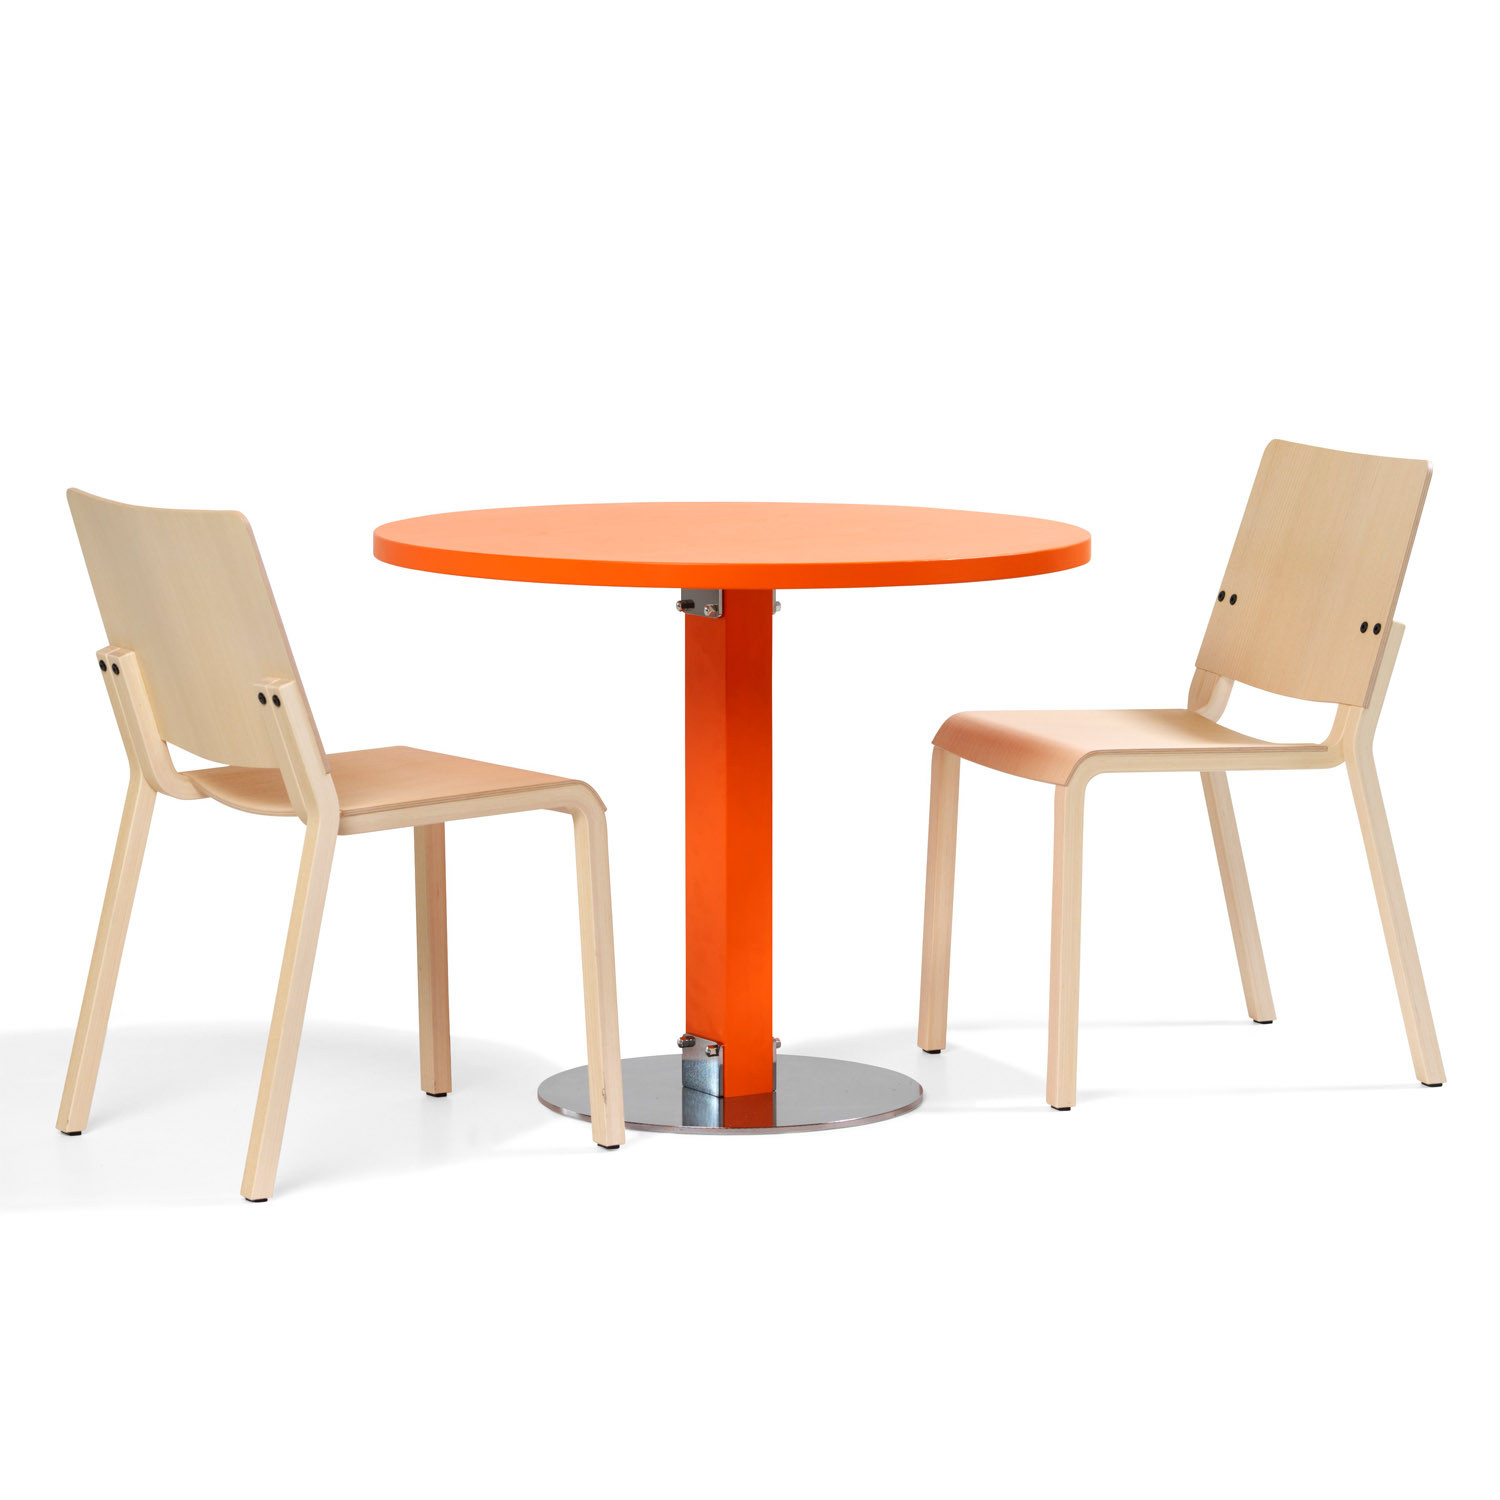 B904 Vivi 4 Cafe Chair & Table by Bla Station